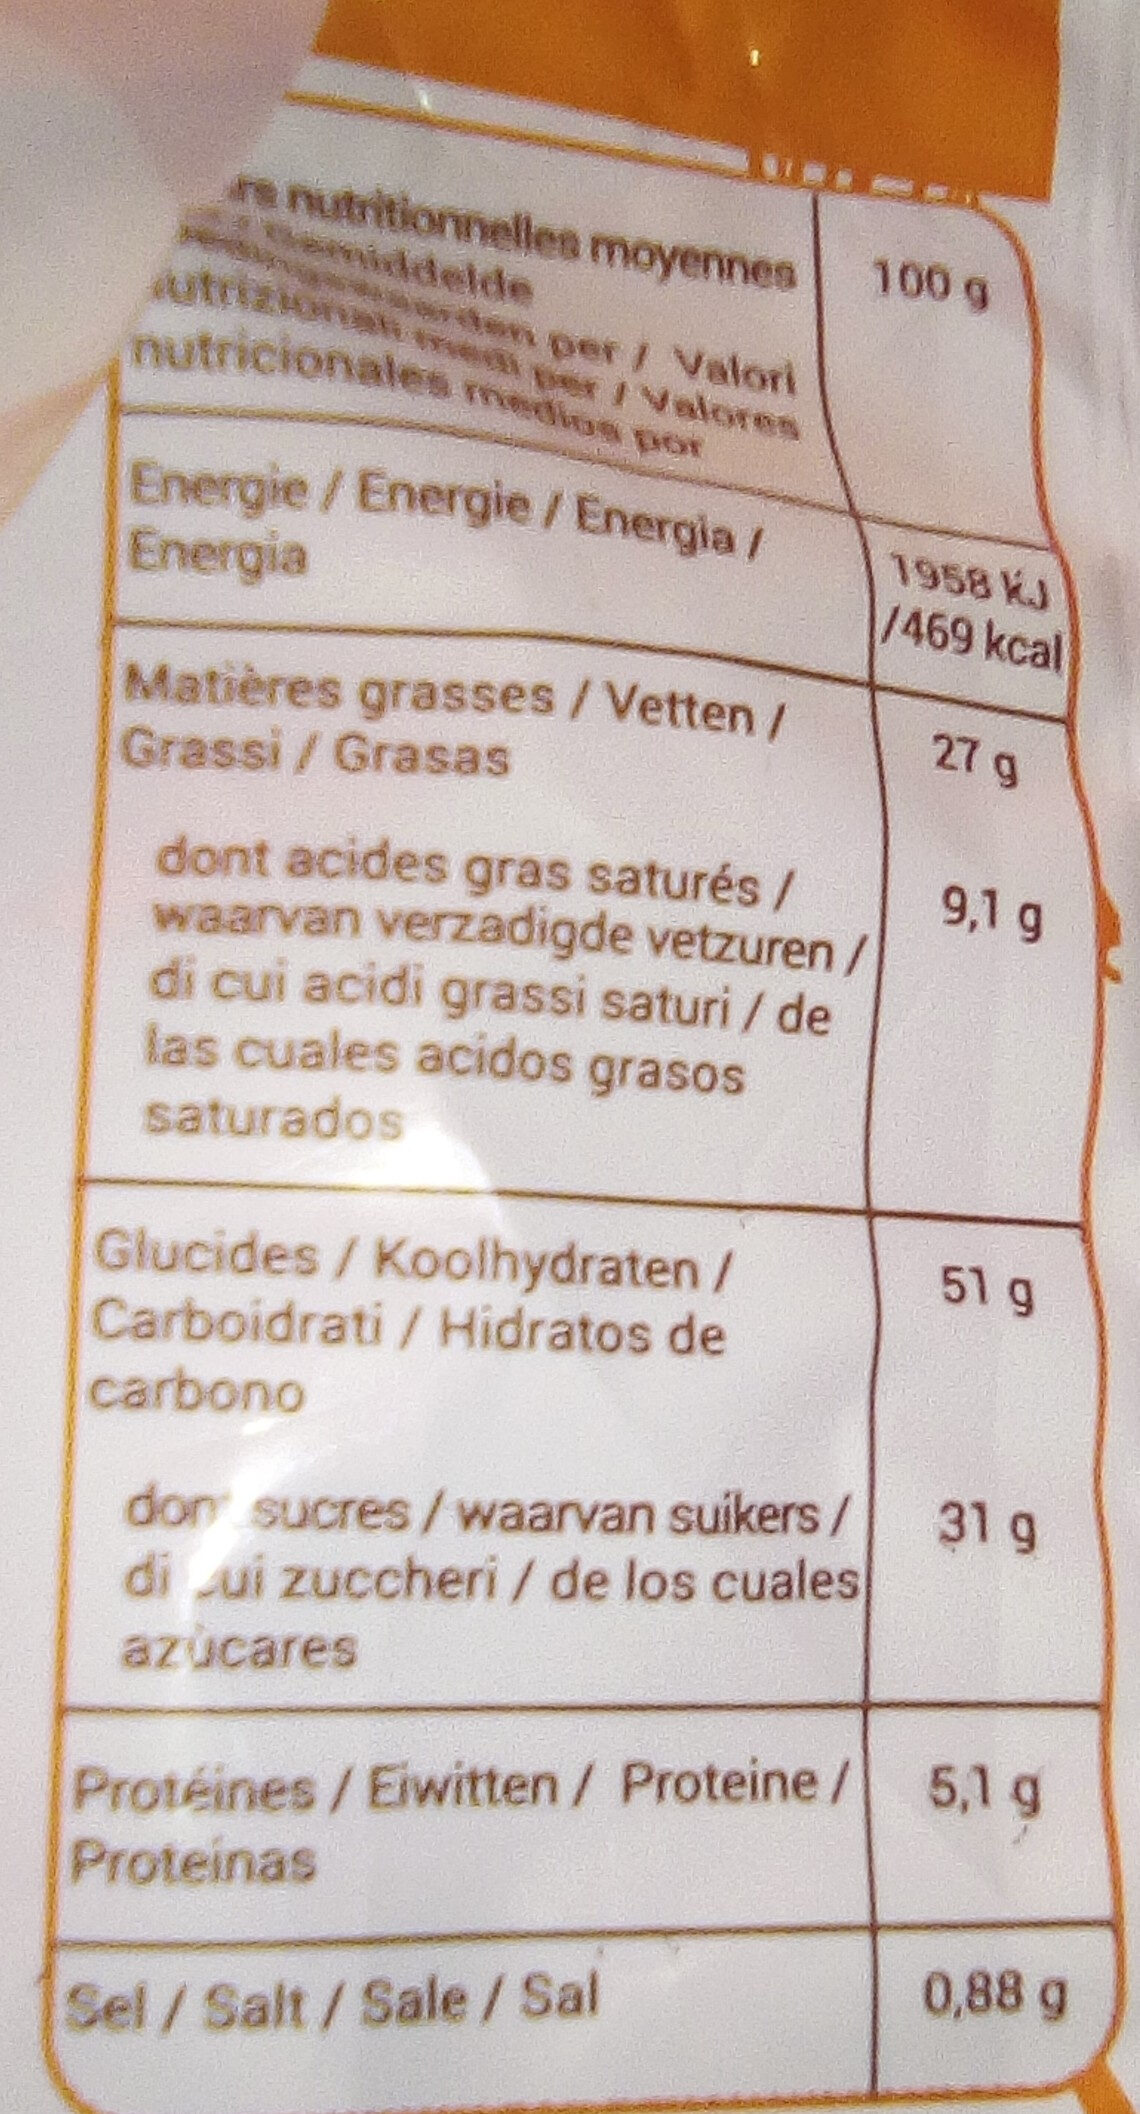 Madeleine nappées chocolat - Nutrition facts